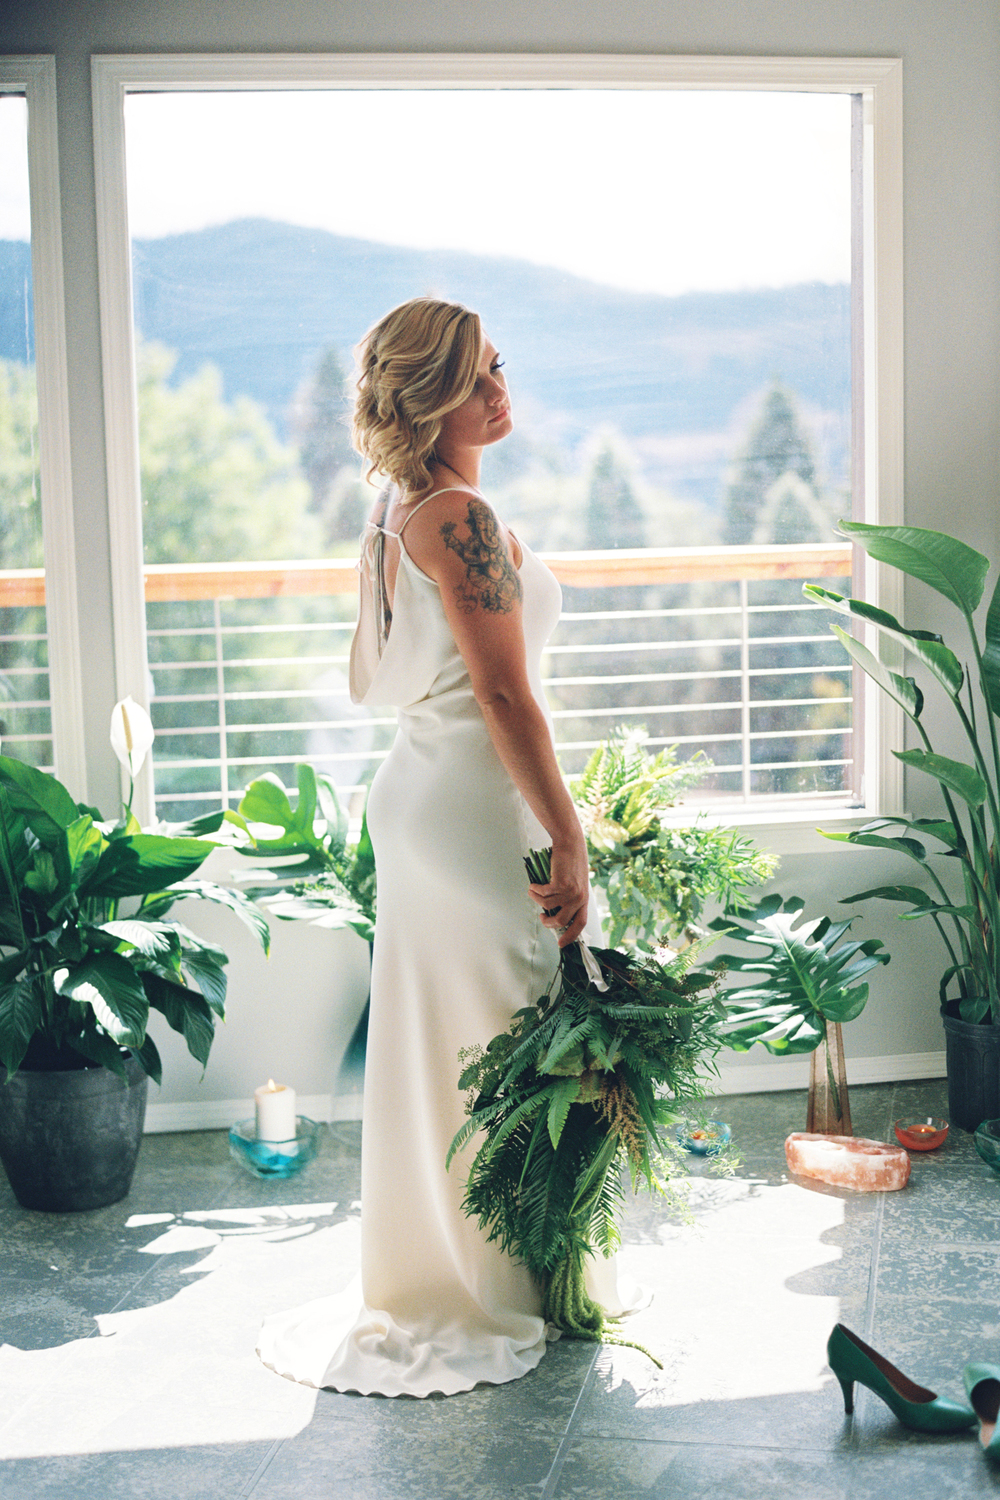 032Outlive+Creative+Tropical+Northwest+Columbia+Gorge+Elopement+Film+Photographer.jpg